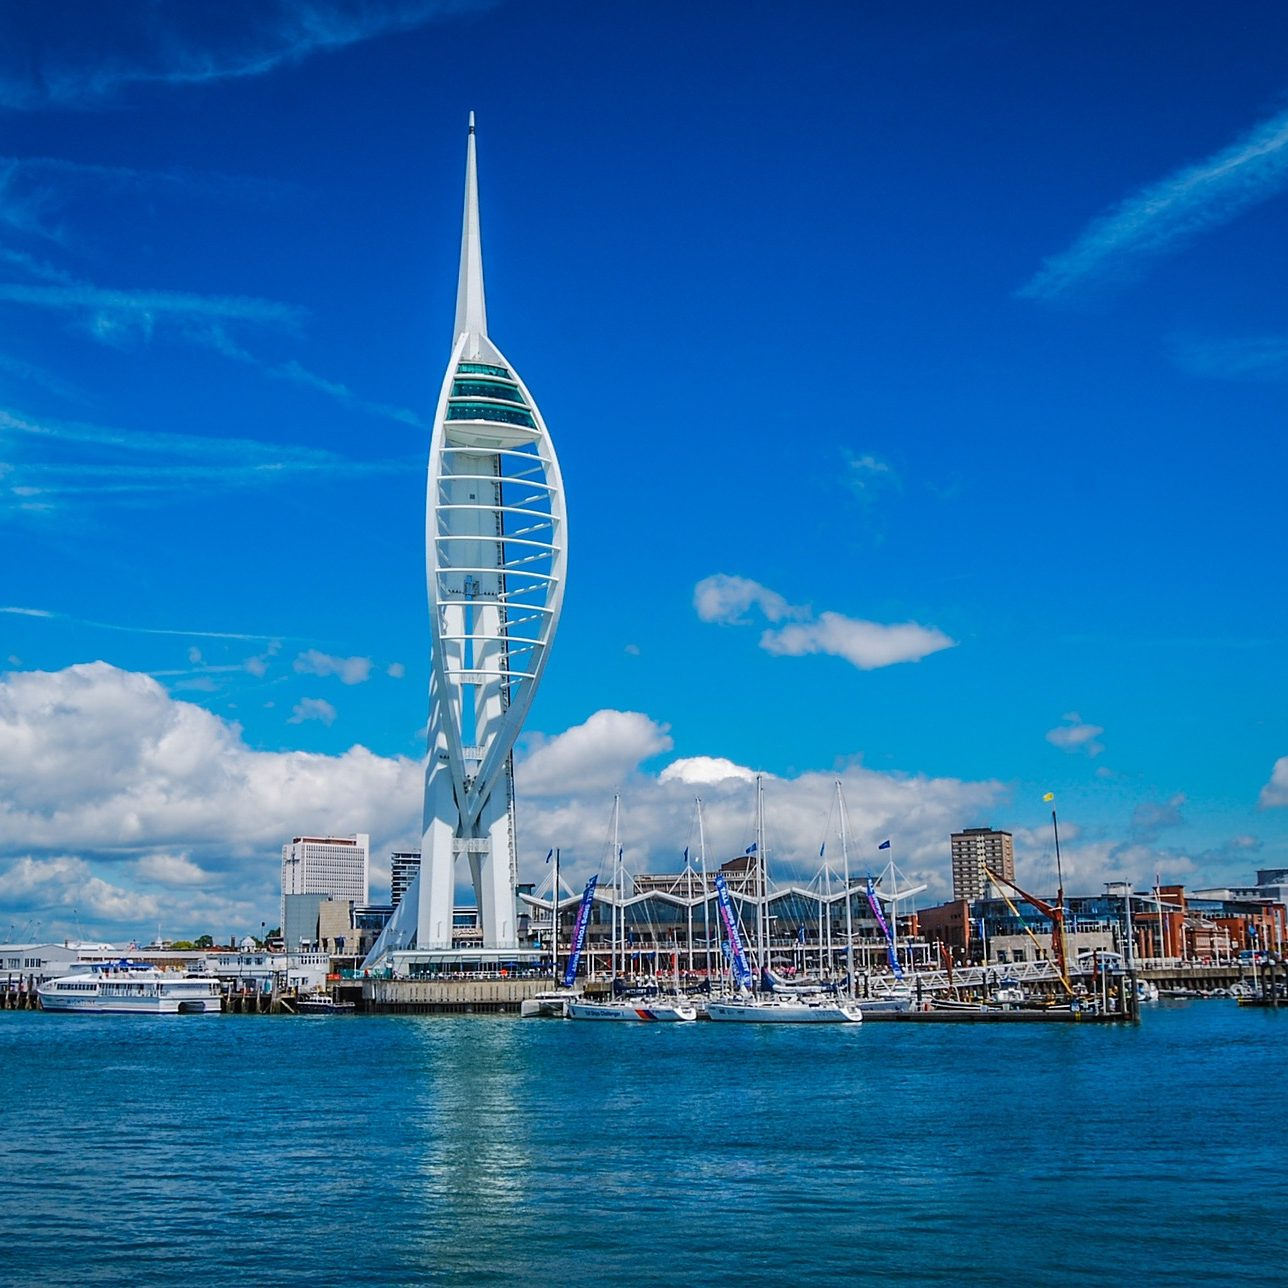 spinnaker-tower-717434_1920